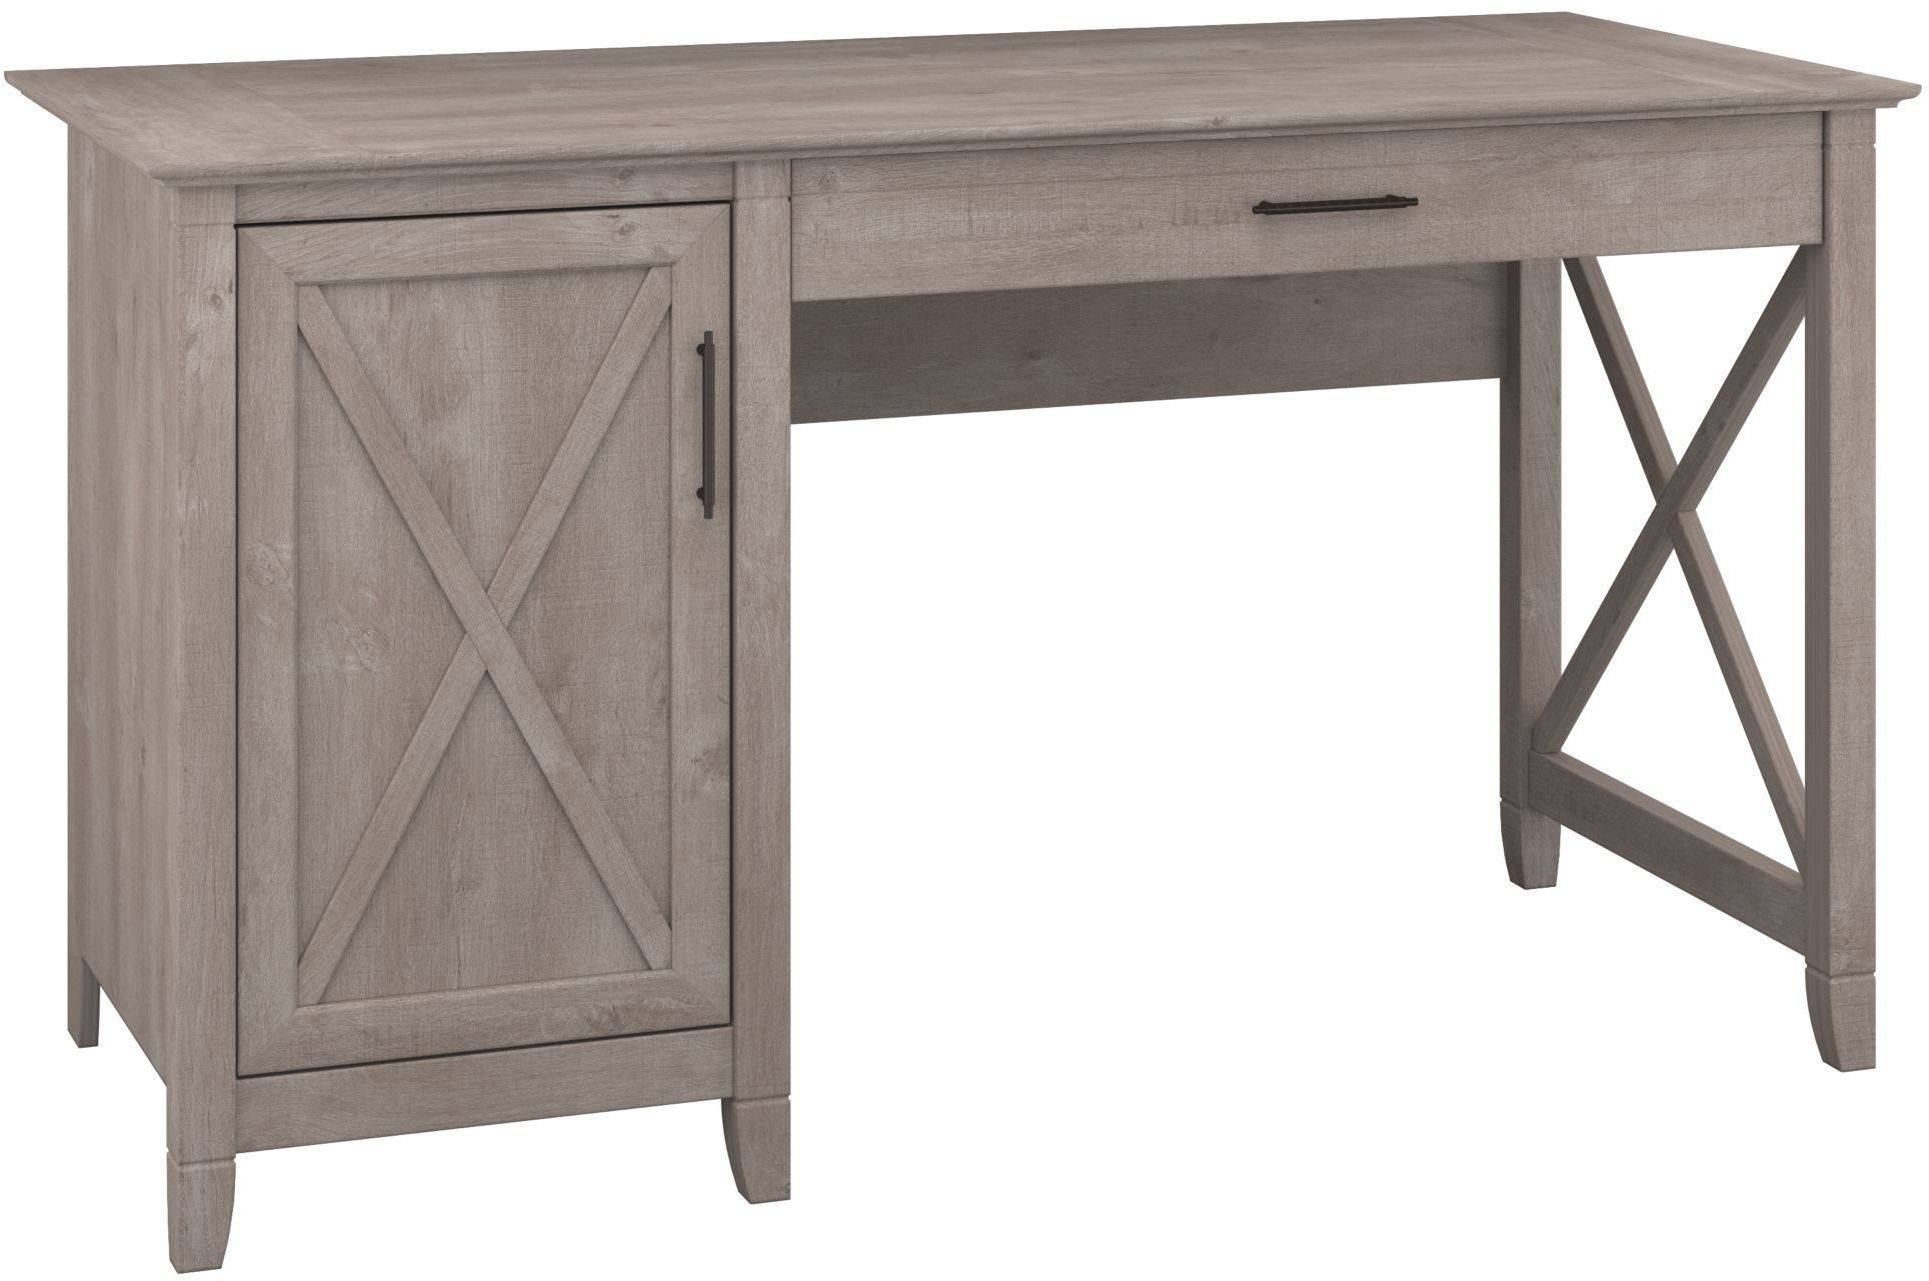 Key West Washed Gray 54 Quot Single Pedestal Desk From Bush